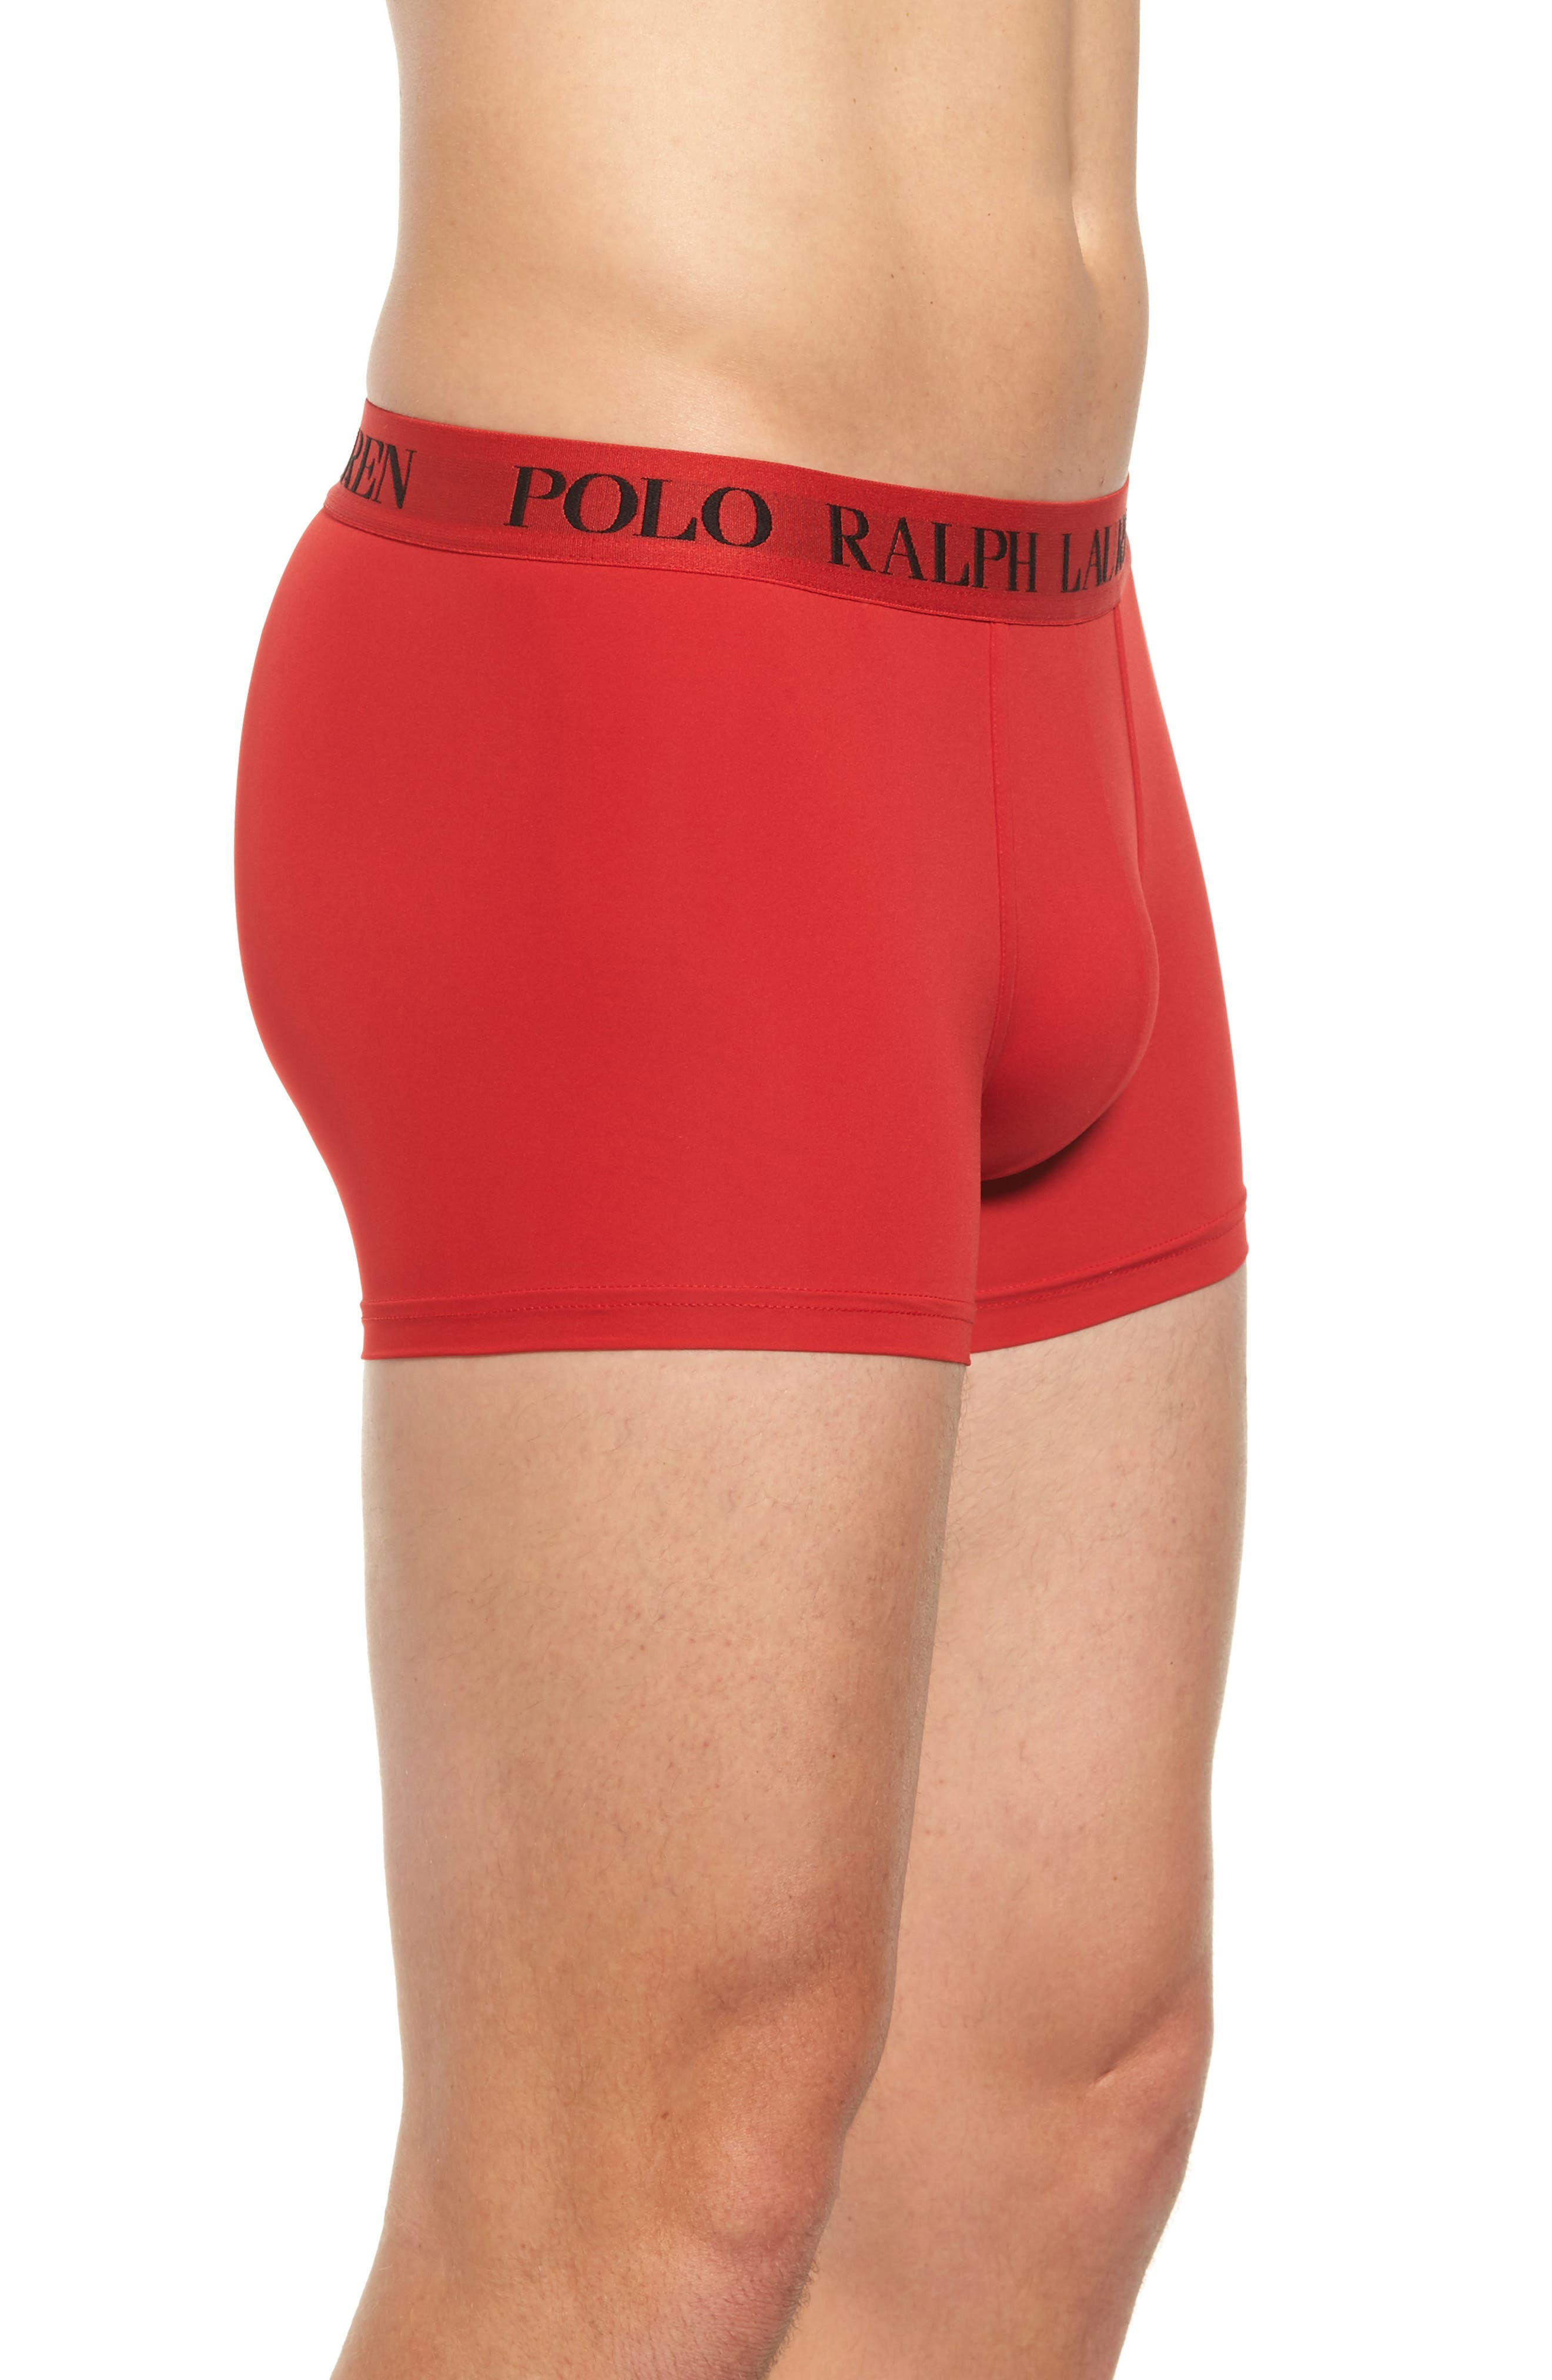 Microfiber Boxer Briefs,                             Alternate thumbnail 3, color,                             Rl2000 Red/ Polo Black